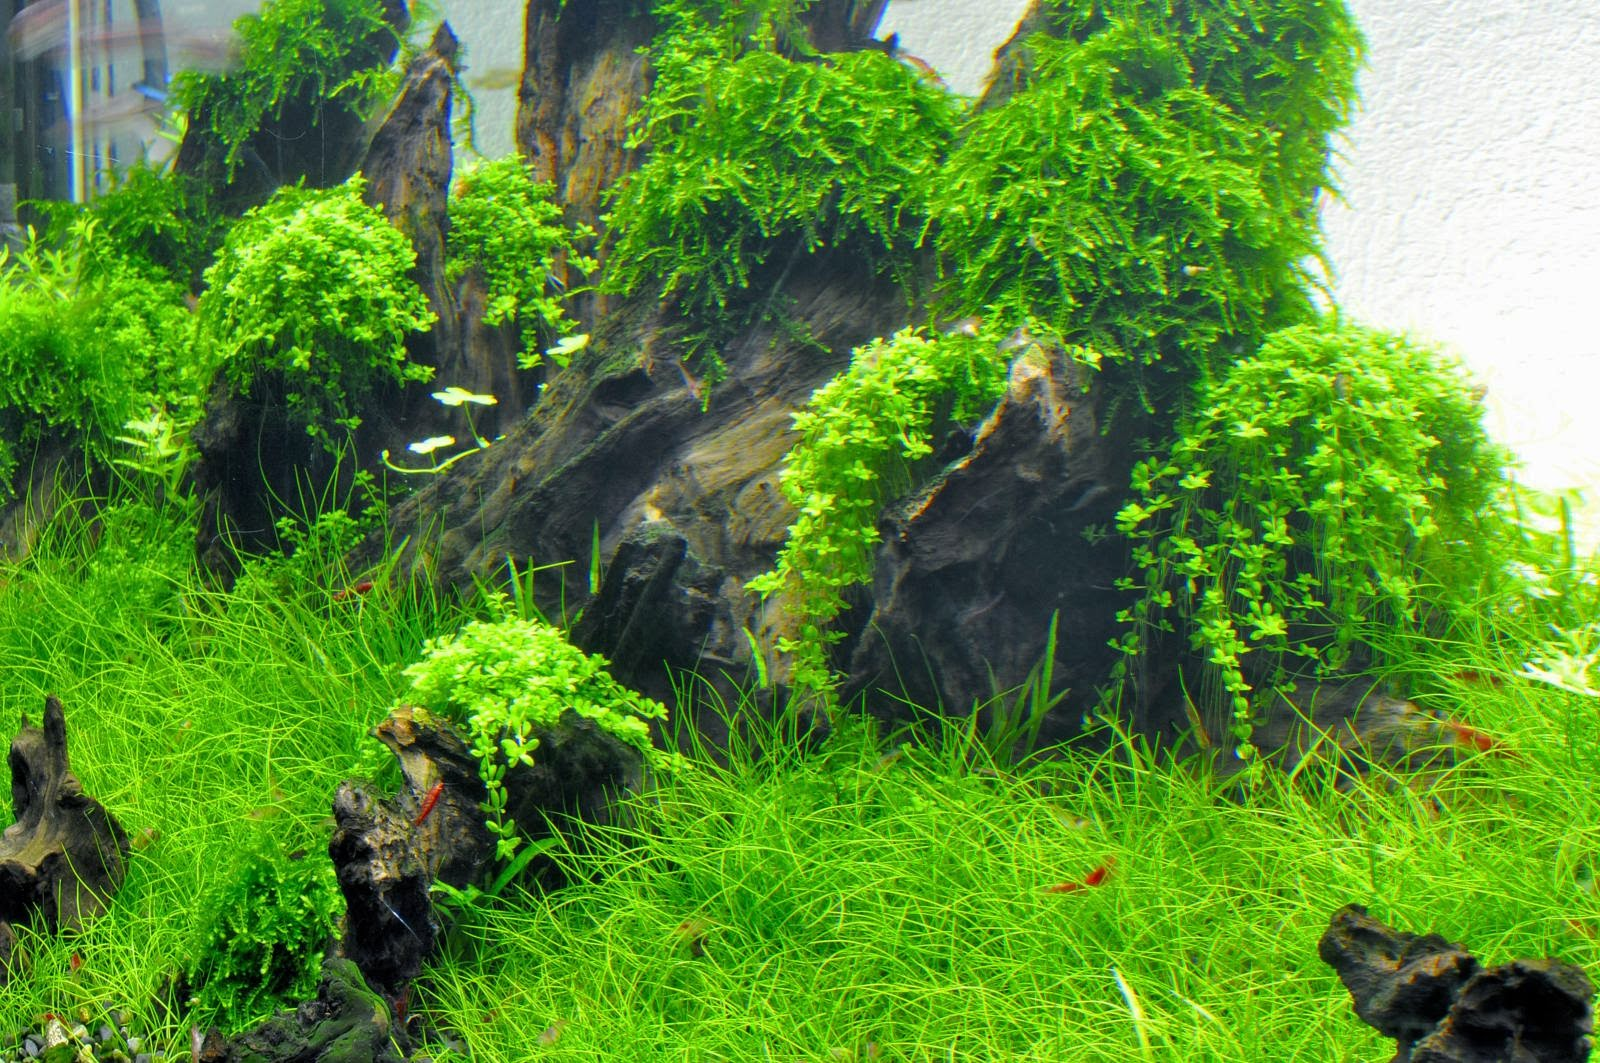 Aquascaping spain crestatx by pep pericas - Aquascape espana ...